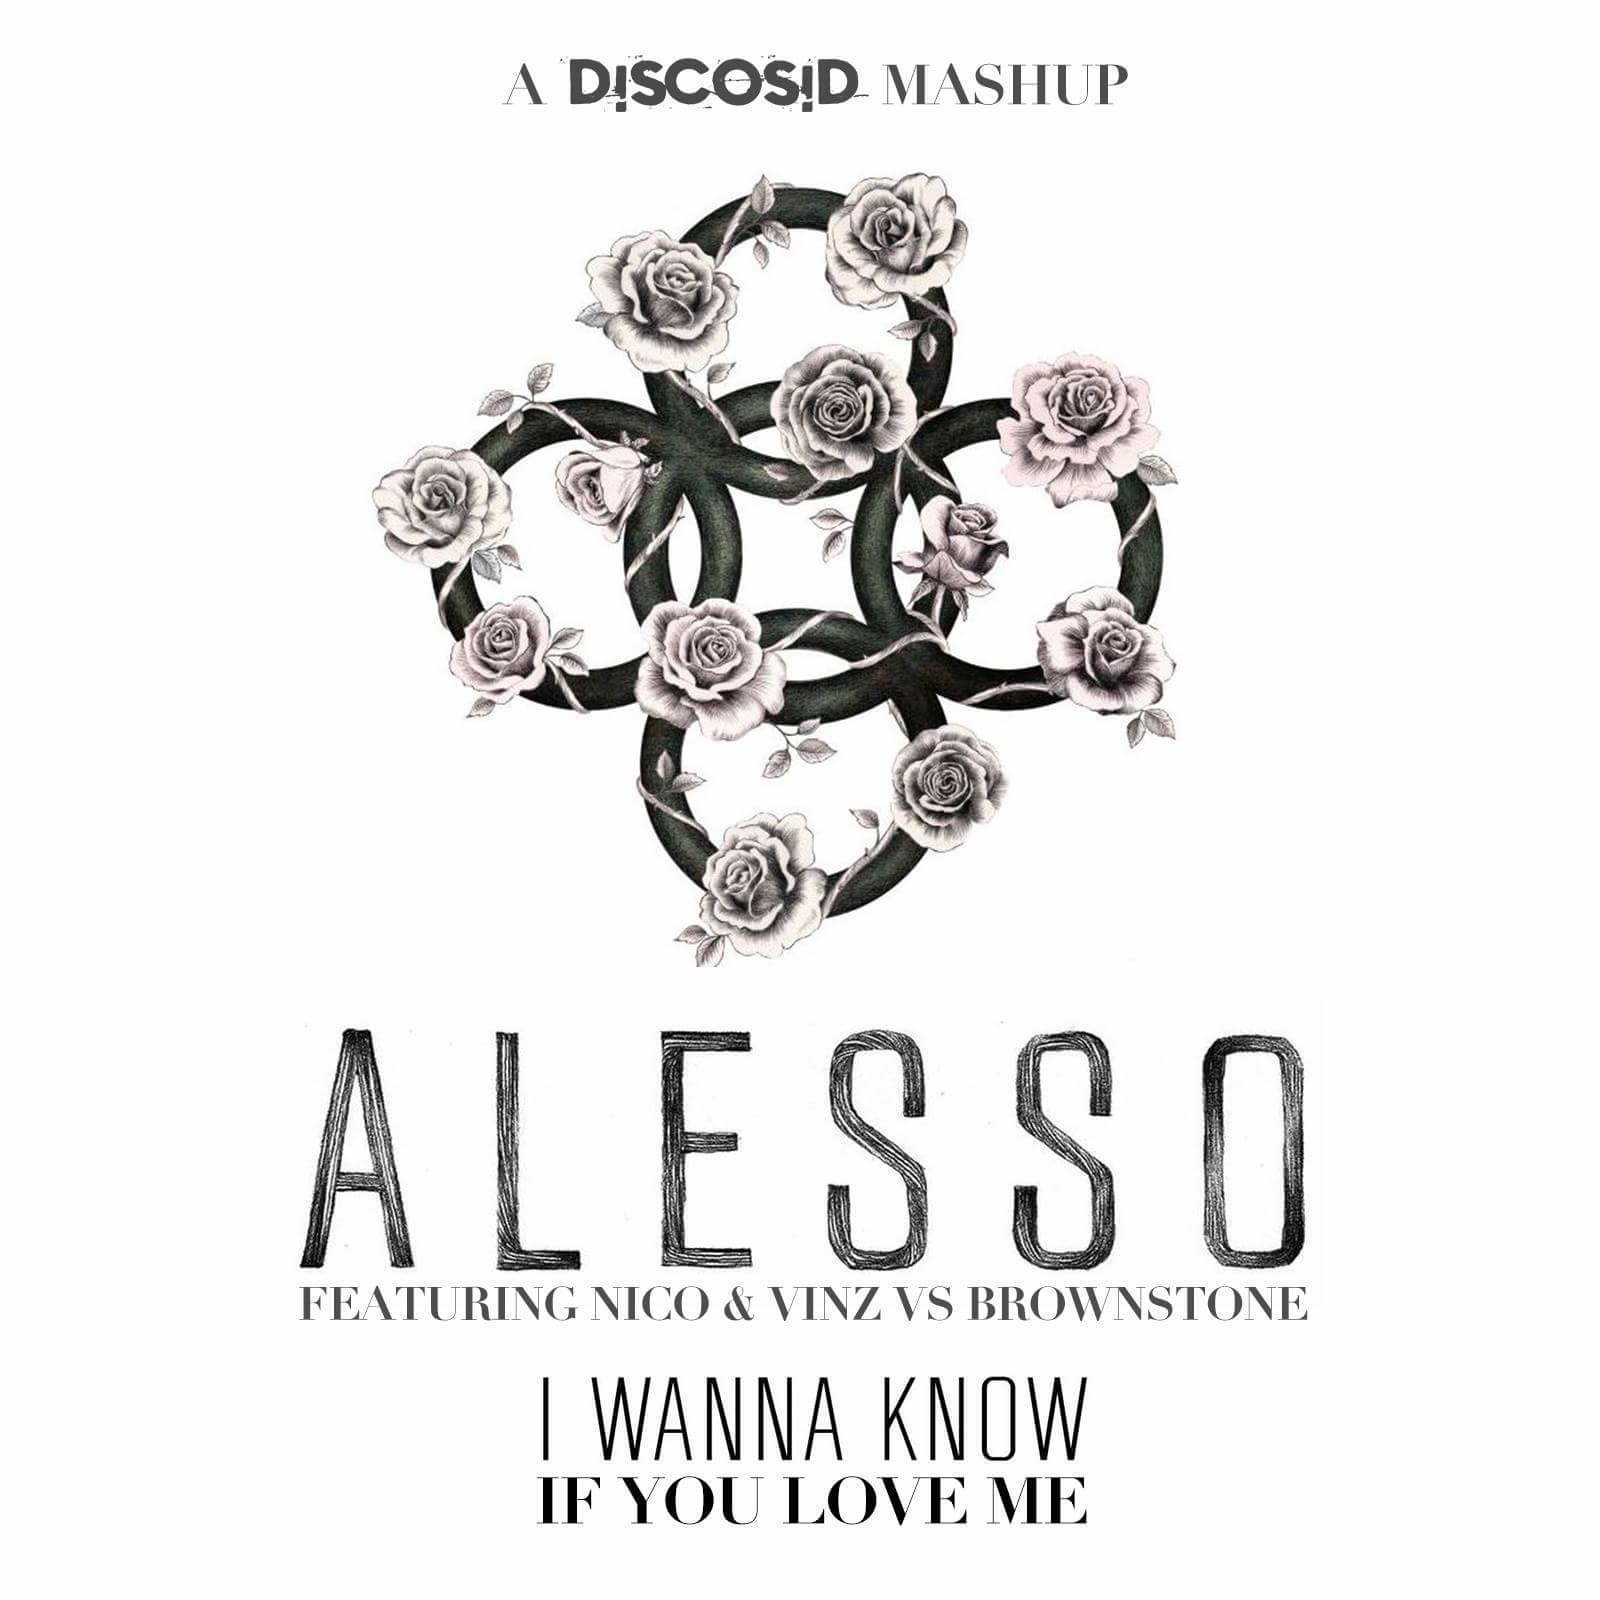 Alesso & Deniz Koyu Vs Brownstone - I Wanna Know If You Love Me (Discosid Mashup)